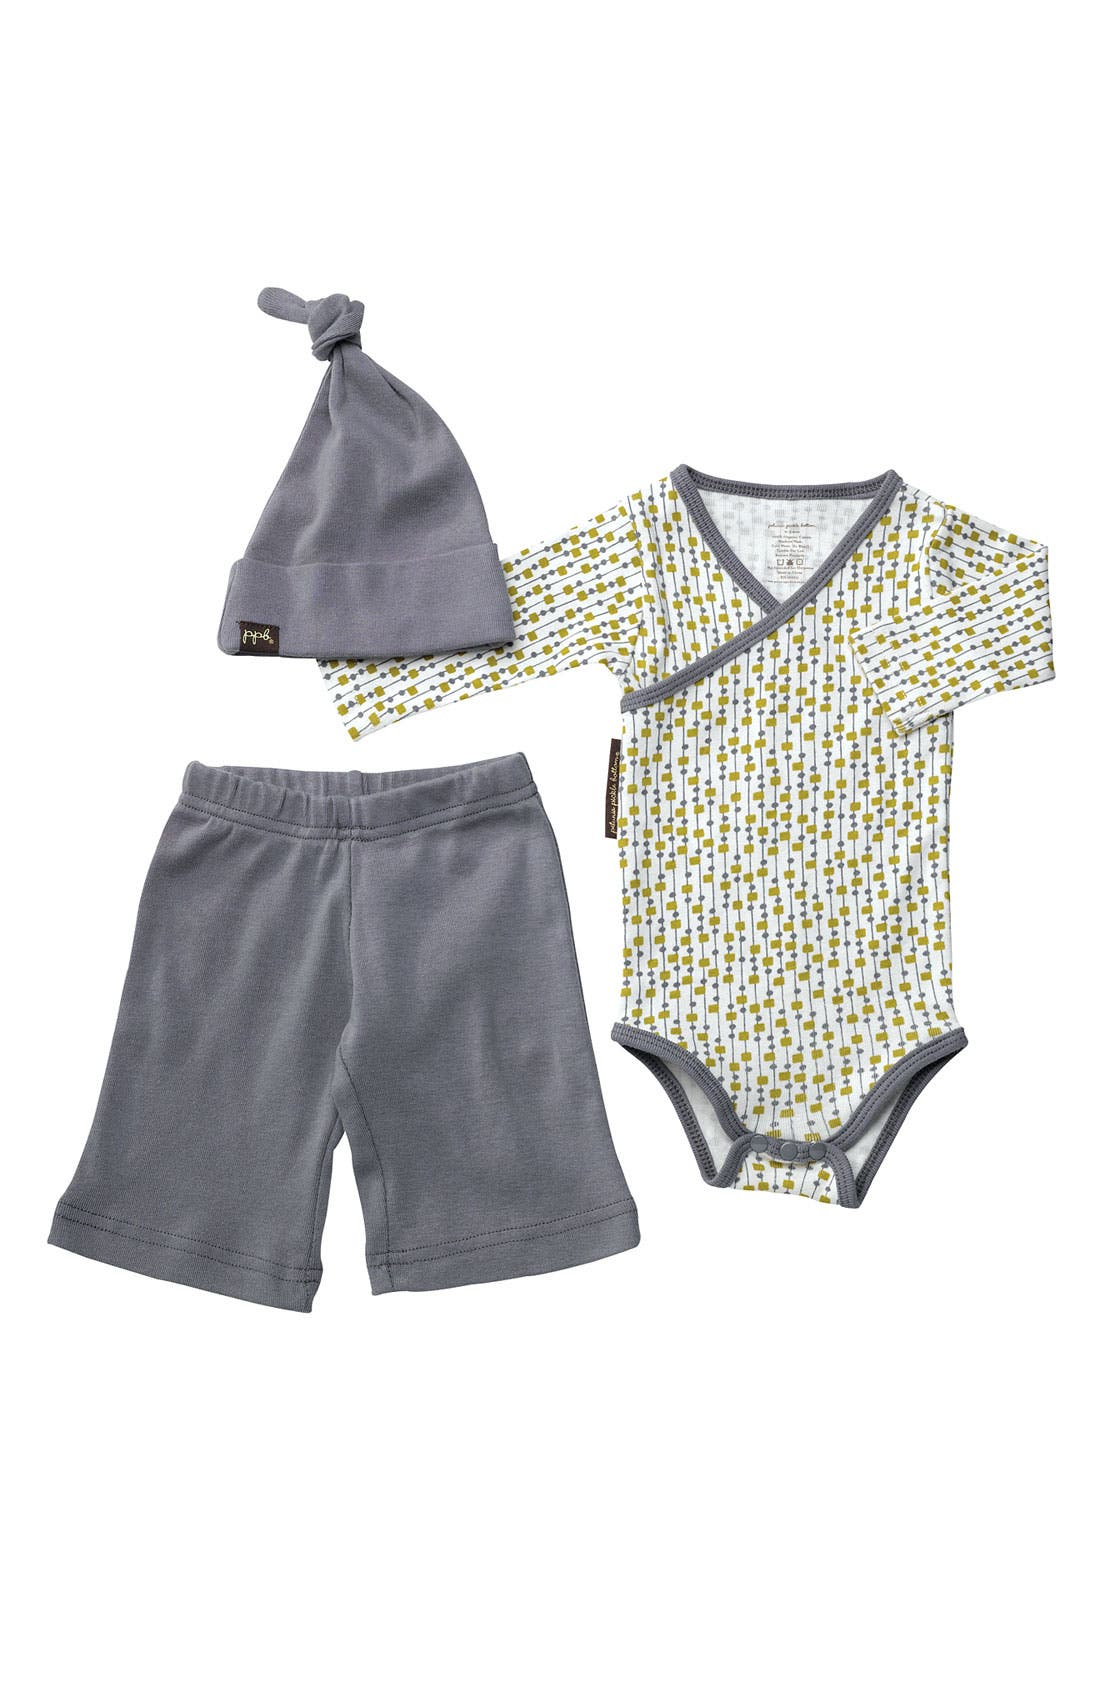 Alternate Image 1 Selected - Petunia Pickle Bottom 'Social' Hat, Bodysuit & Pants Set (Baby)